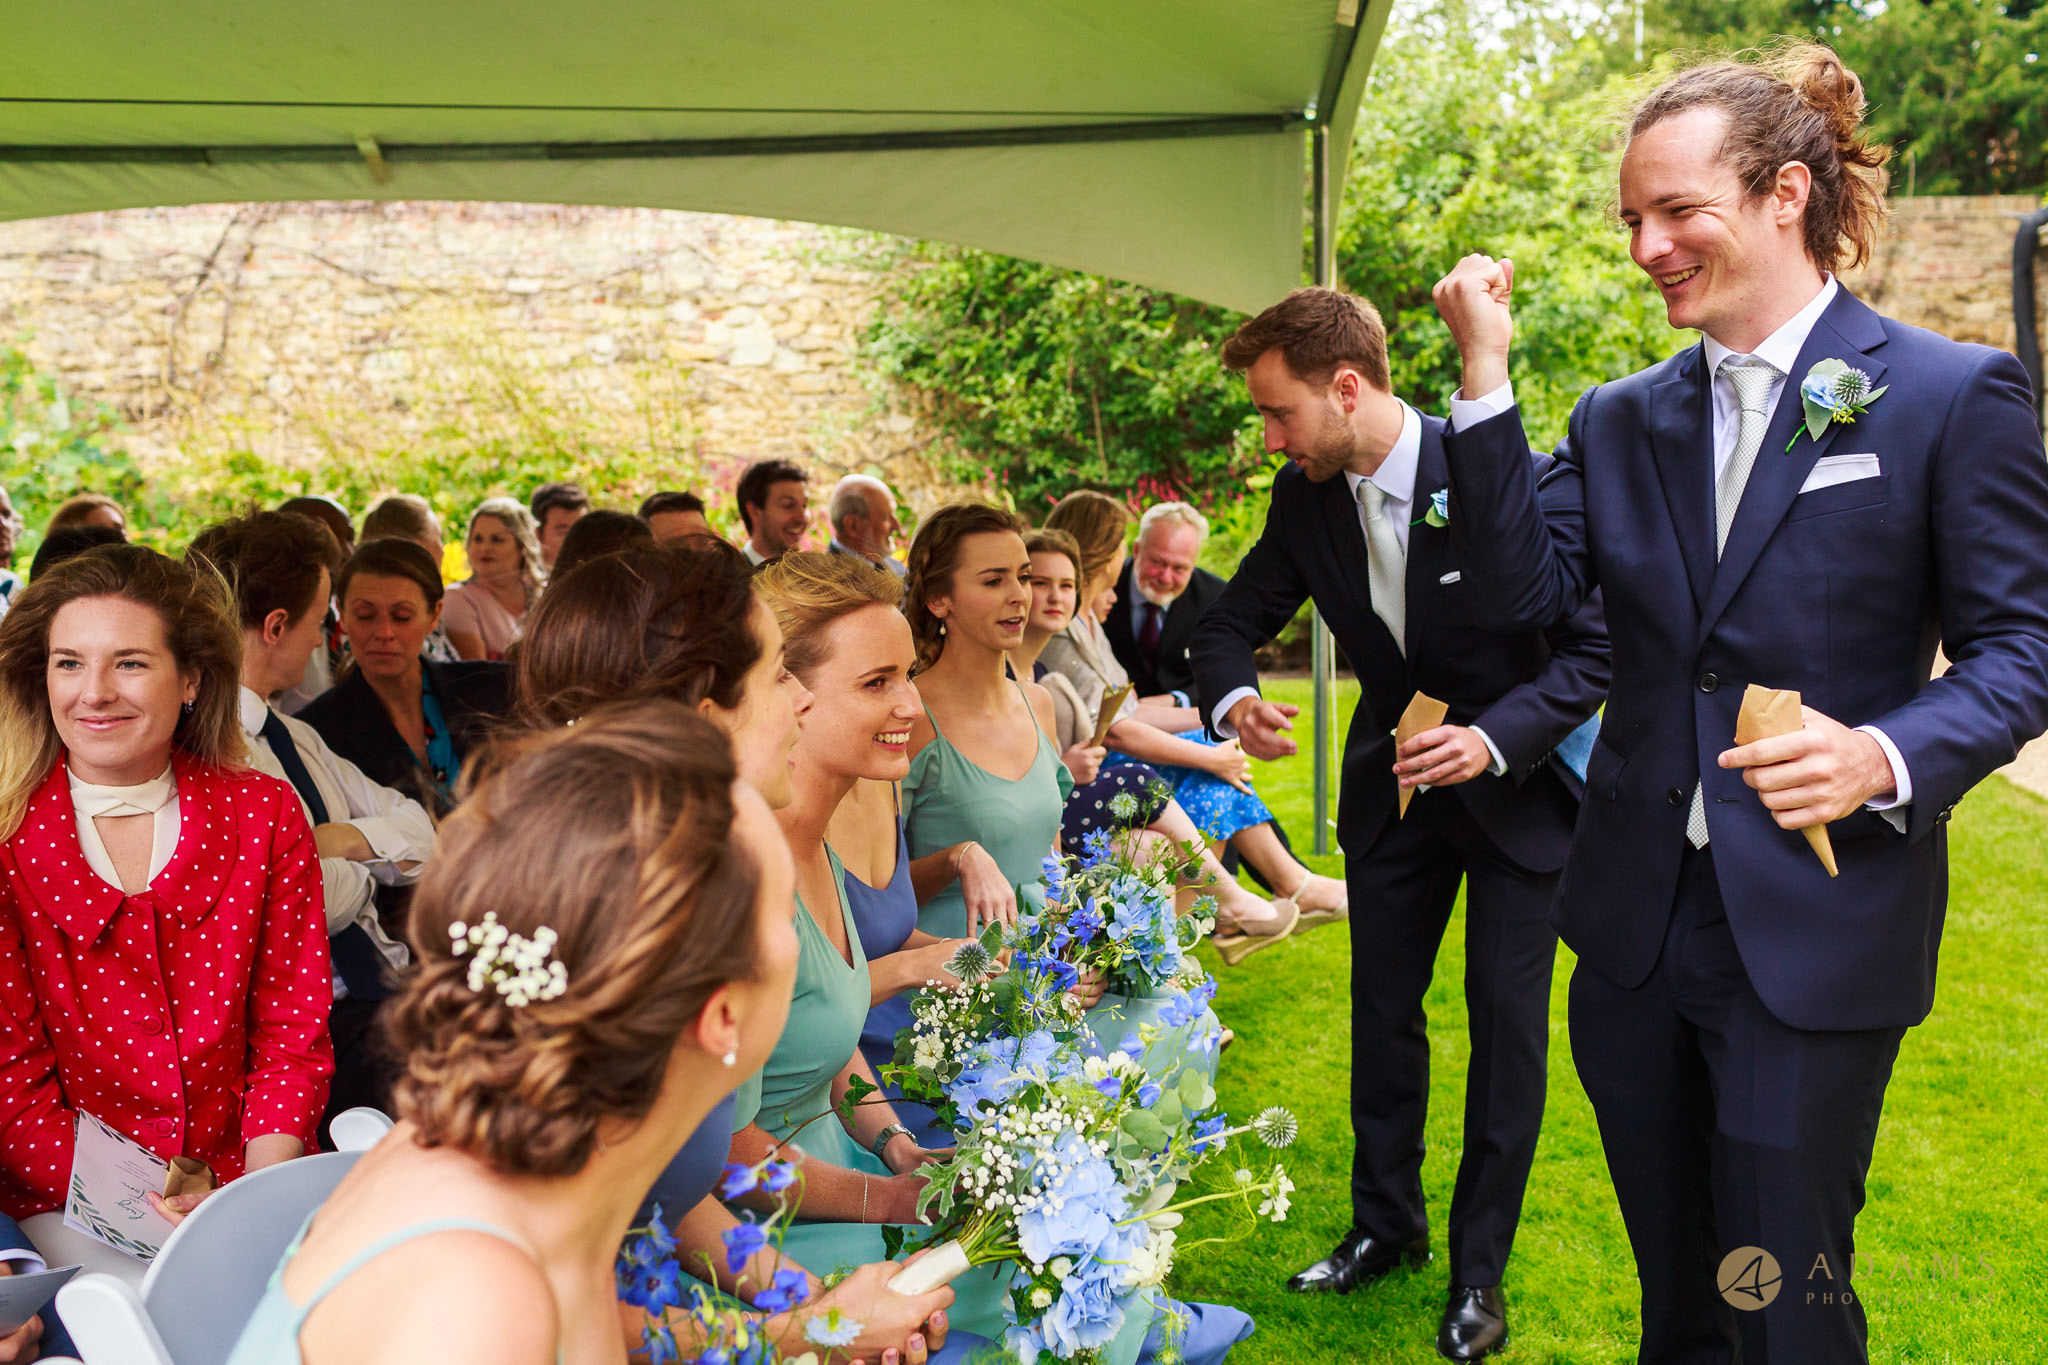 guests enjoying themselves at the ceremony in Magdalena College